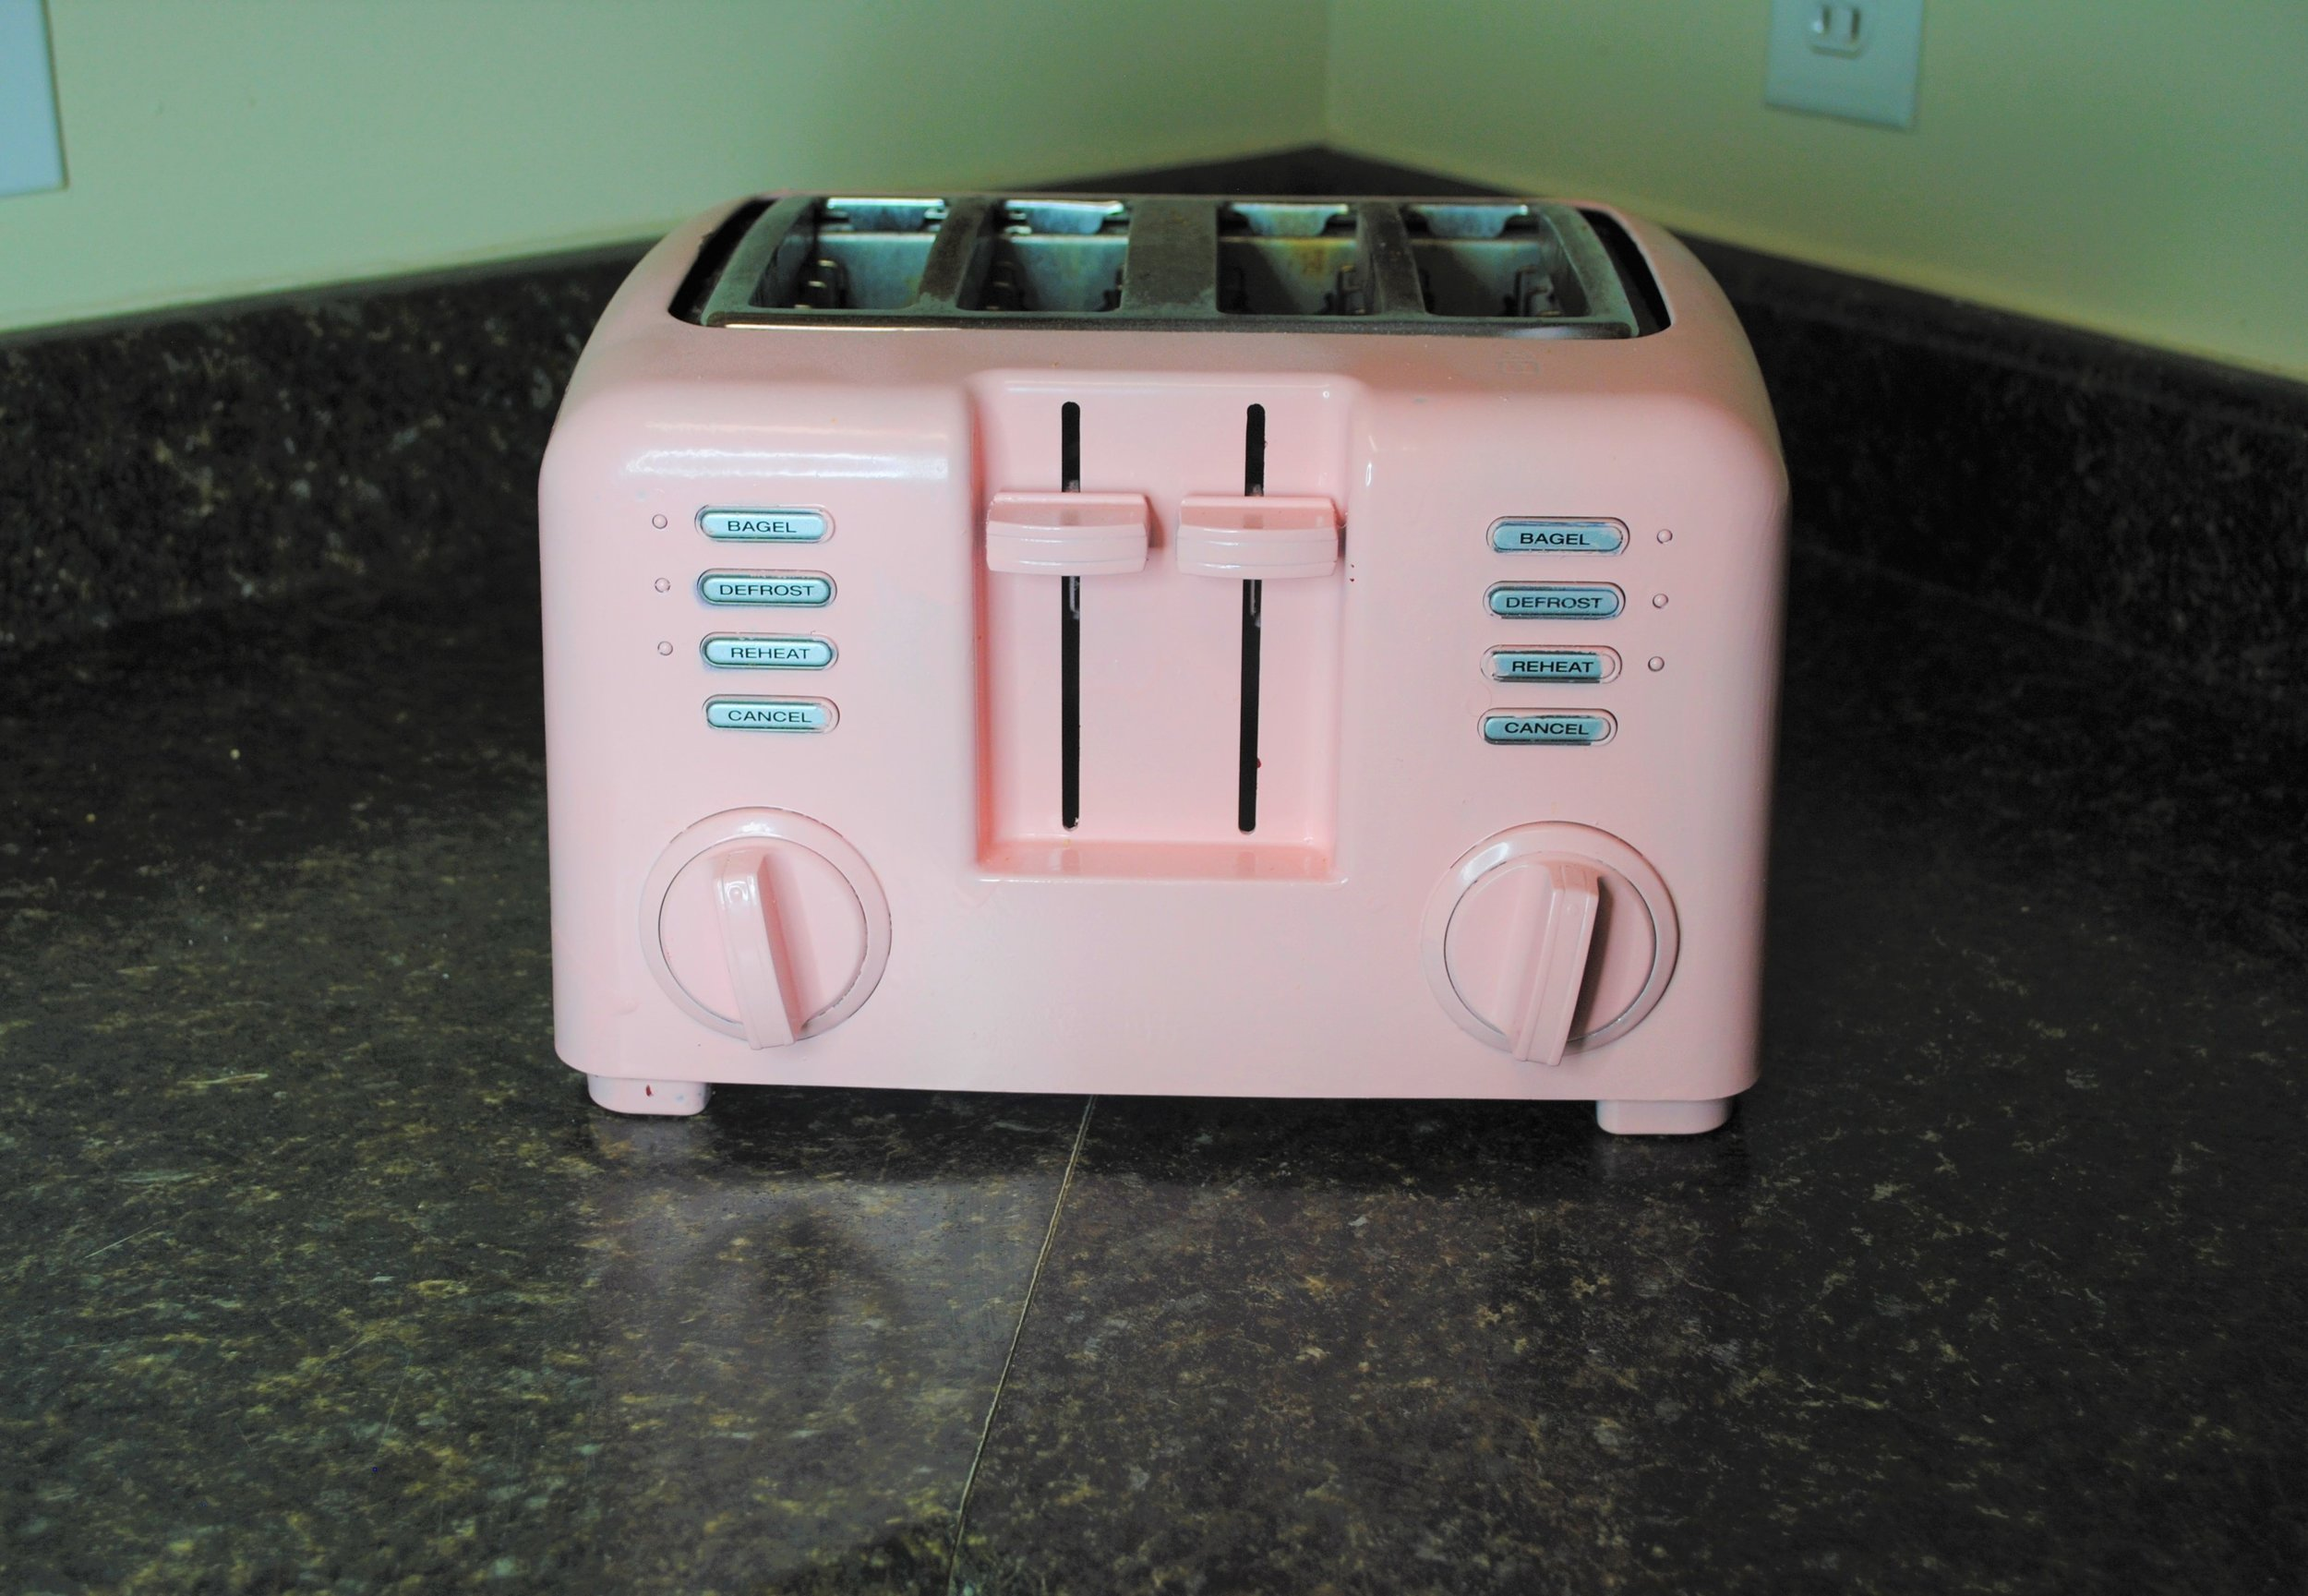 I love this toaster because it looks like something you'd find in a retro Barbie Dream House. Toaster Goals.